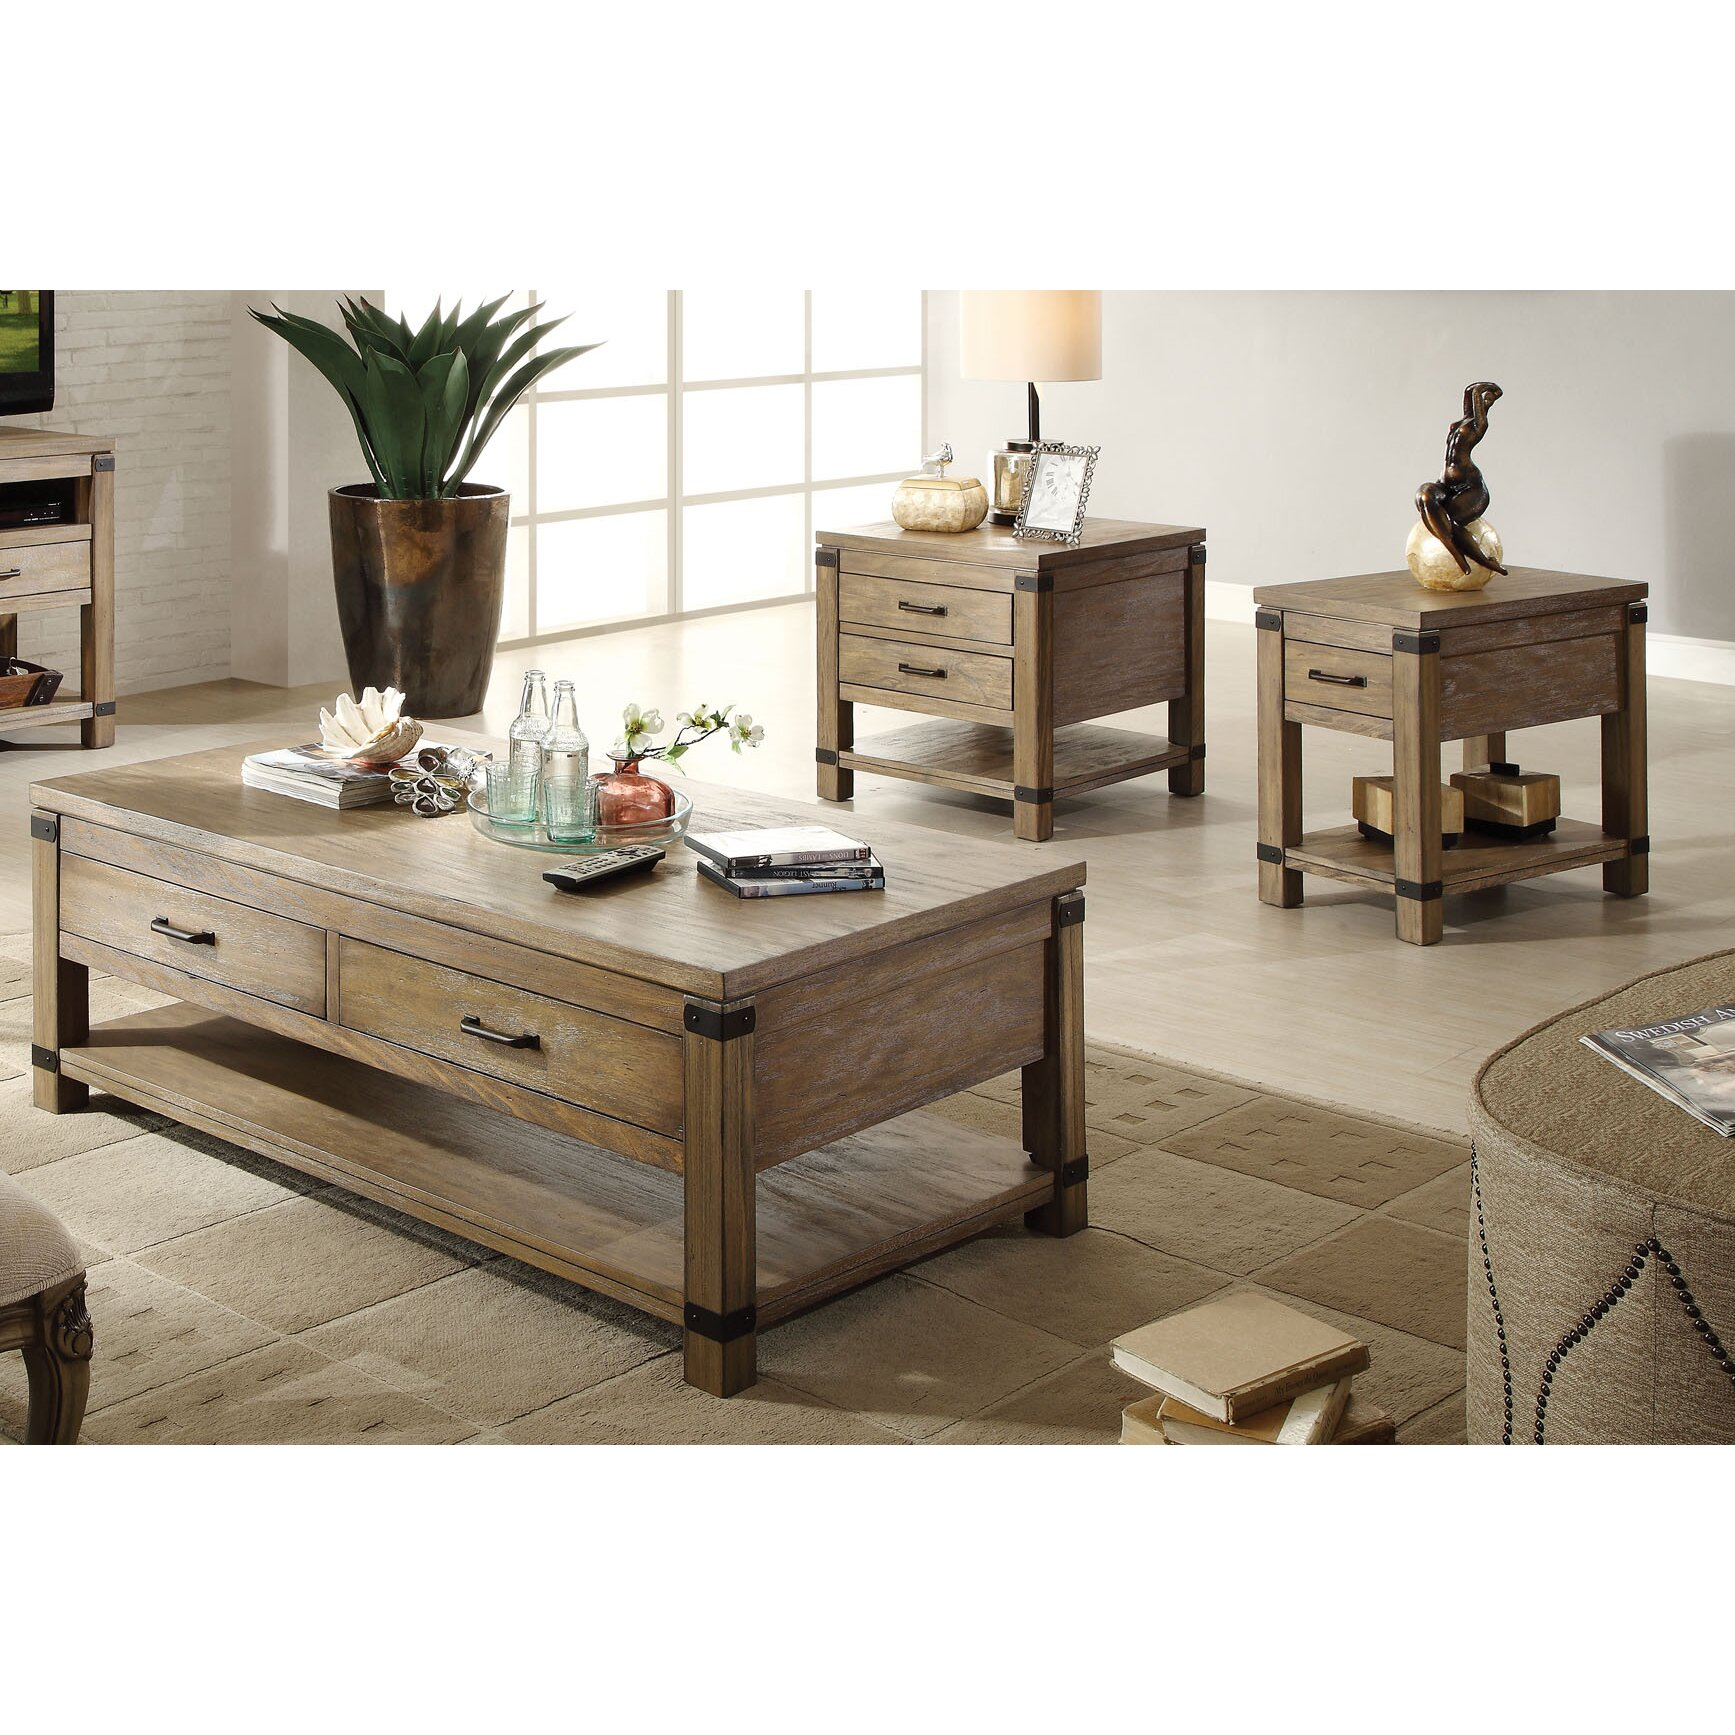 Jordan S Furniture Coffee Table Sets: Riverside Furniture Bay Cliff Coffee Table Set & Reviews